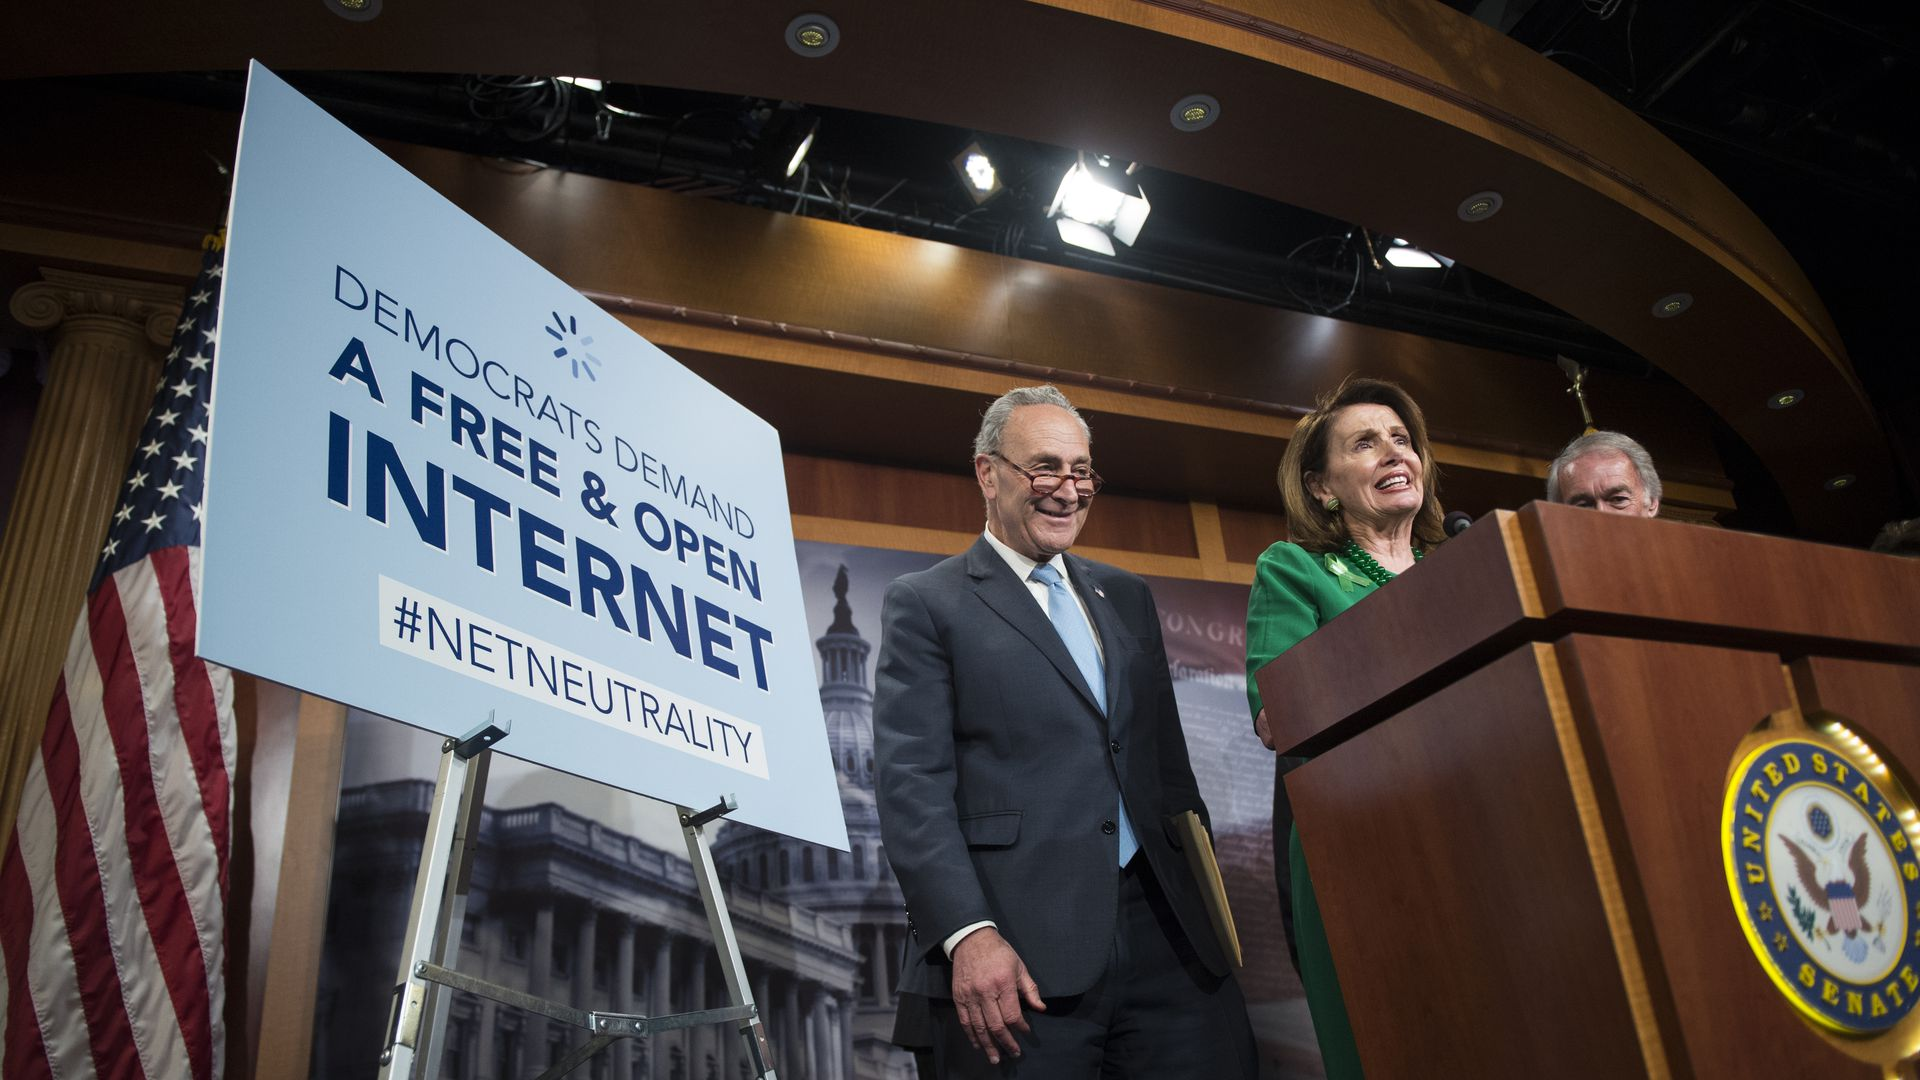 Two people stand next to a pro-net neutrality sign